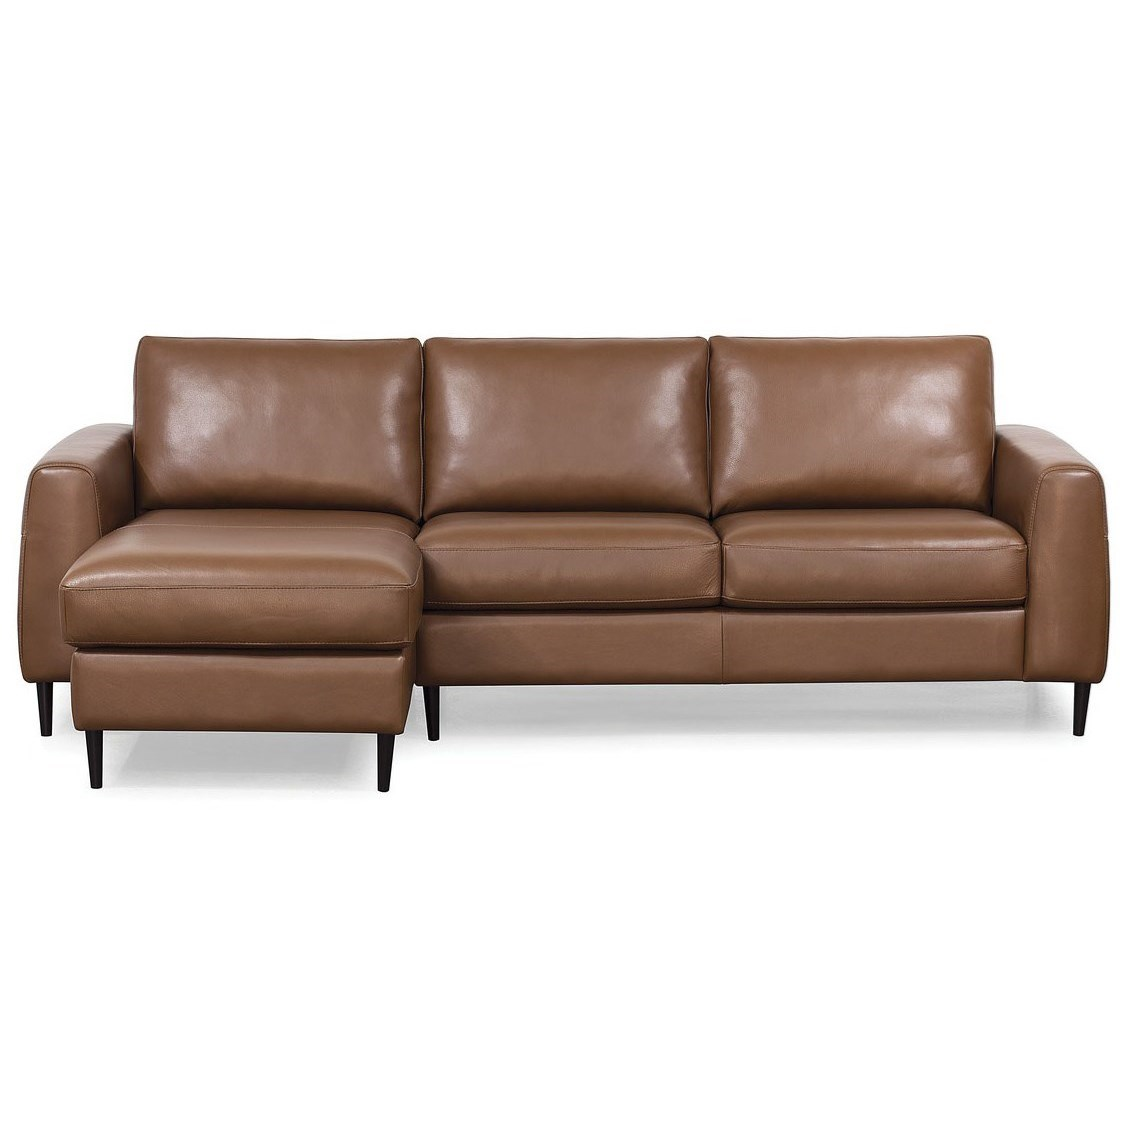 Atticus Sectional Sofa by Palliser at Furniture and ApplianceMart